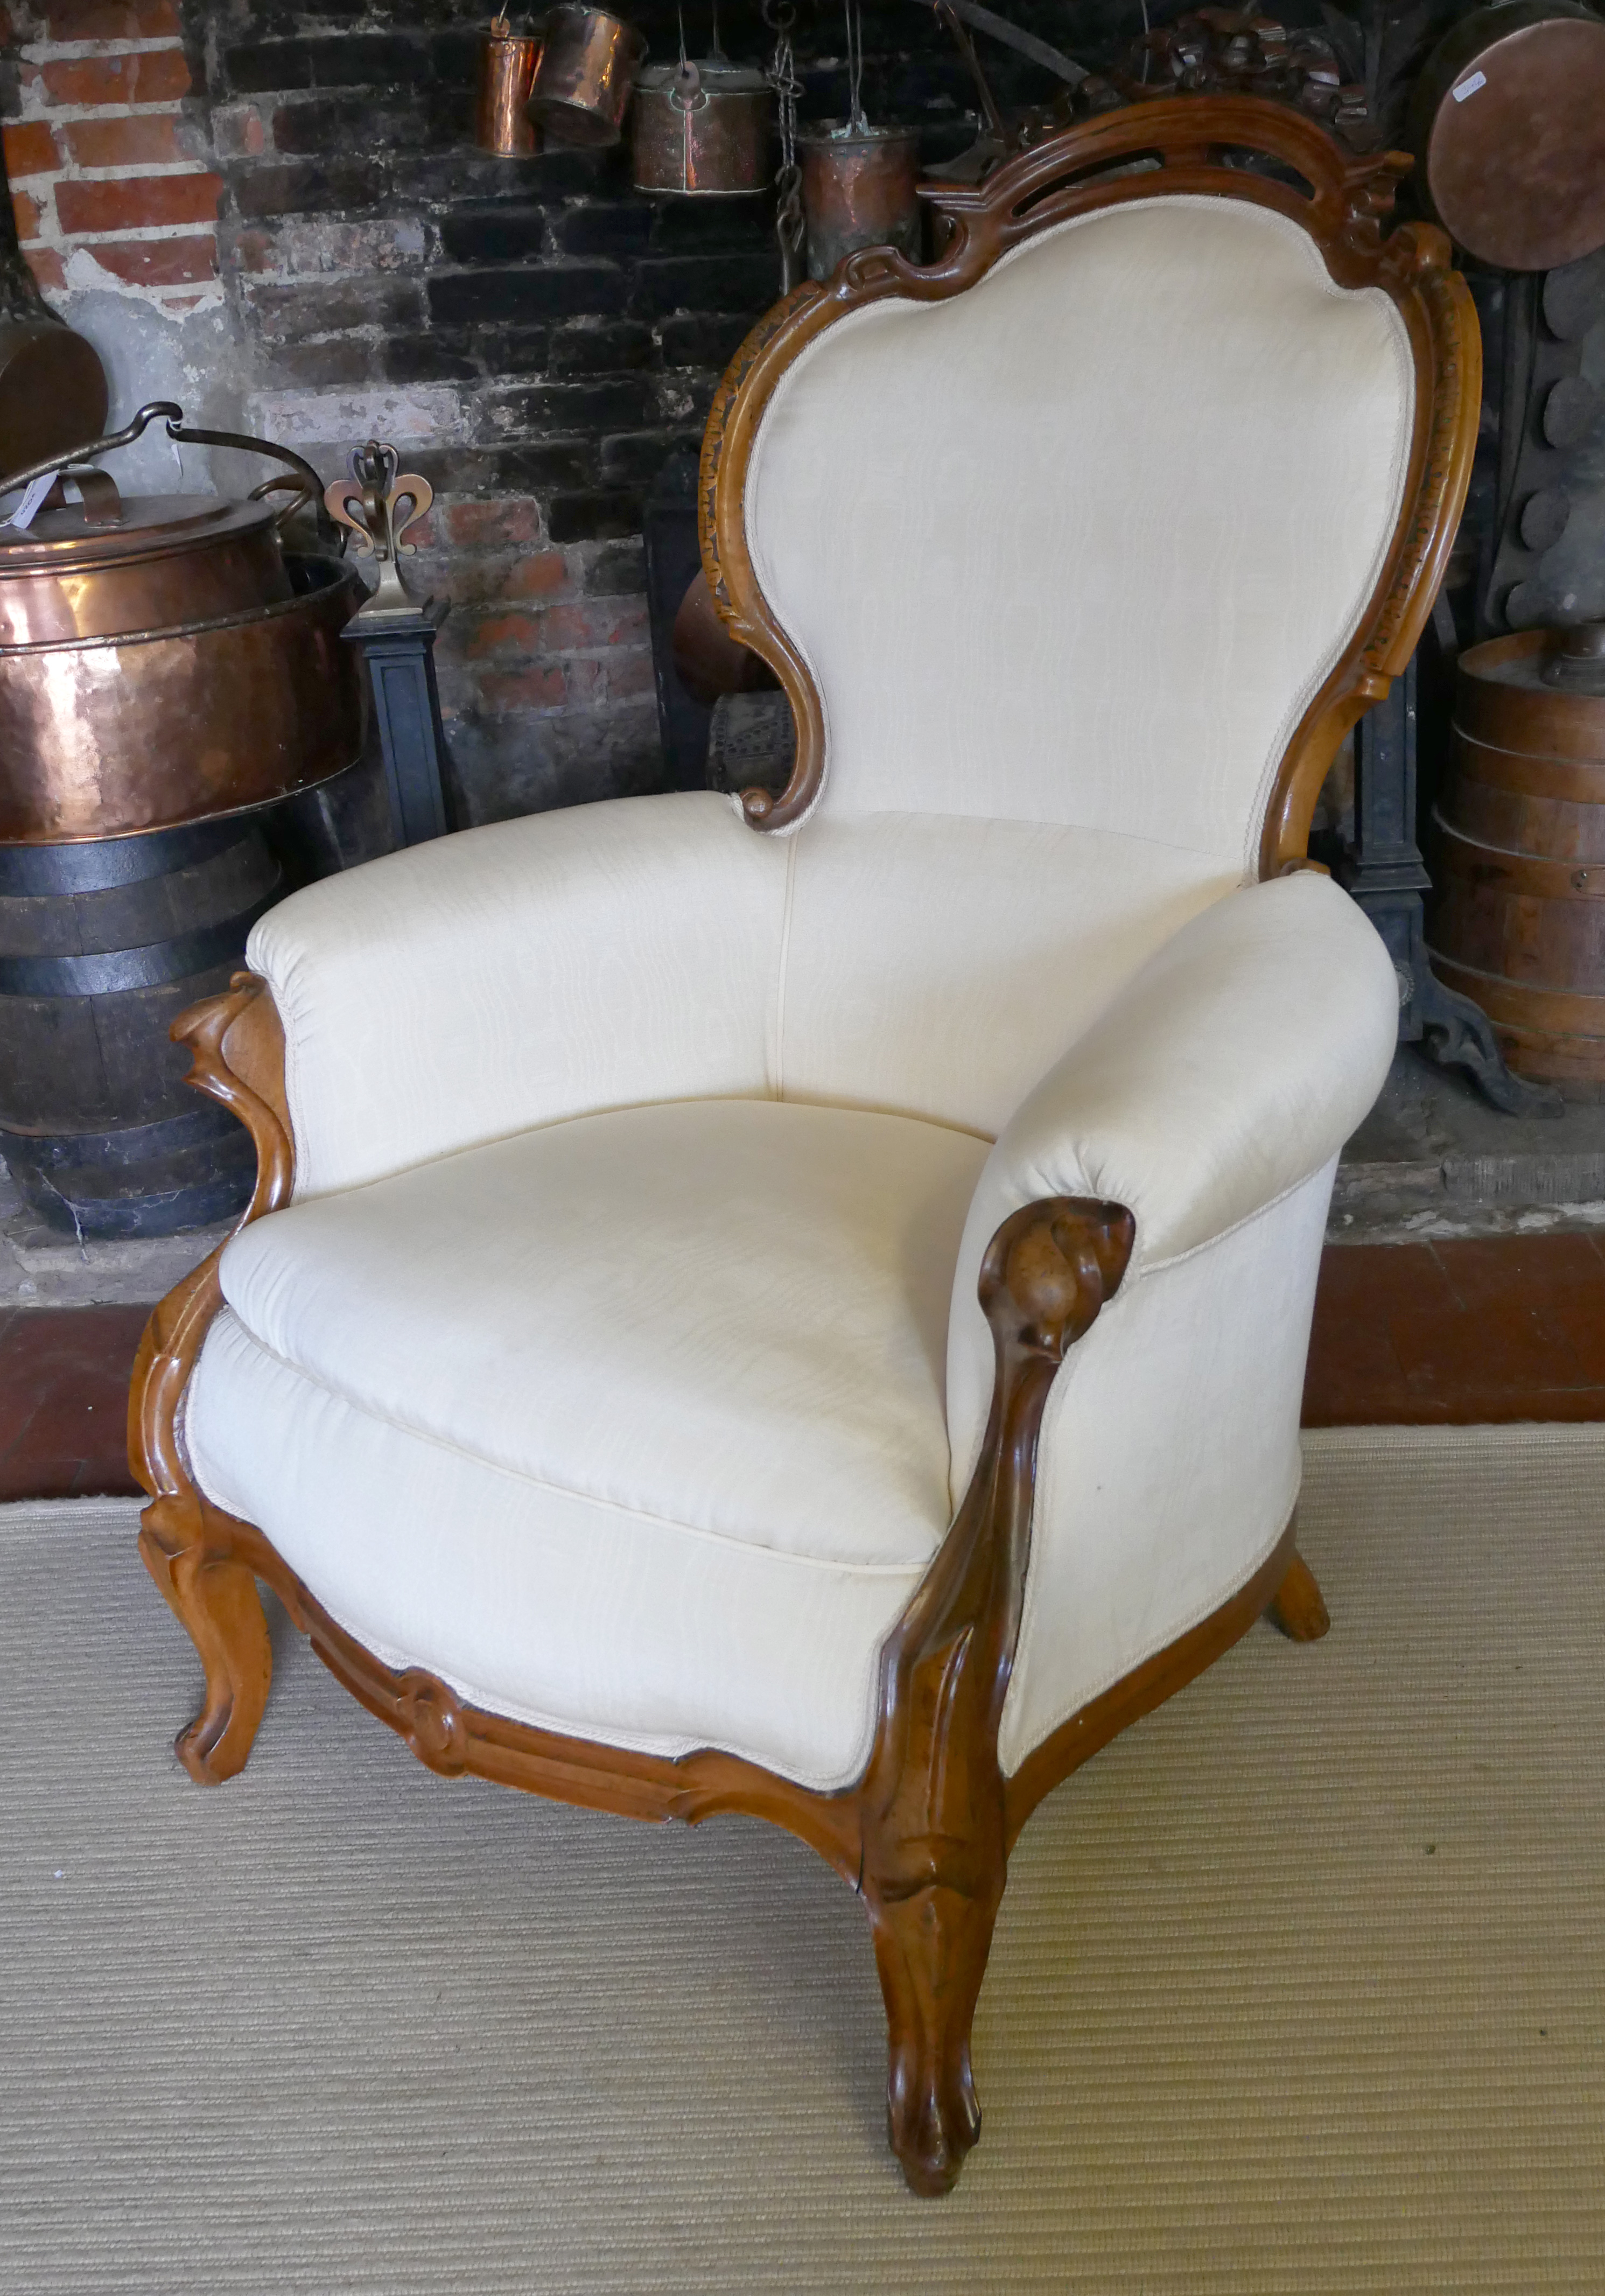 A 19TH CENTURY FRENCH ARMCHAIR Upholstered in a cream water silk, the mahogany frame with carved and